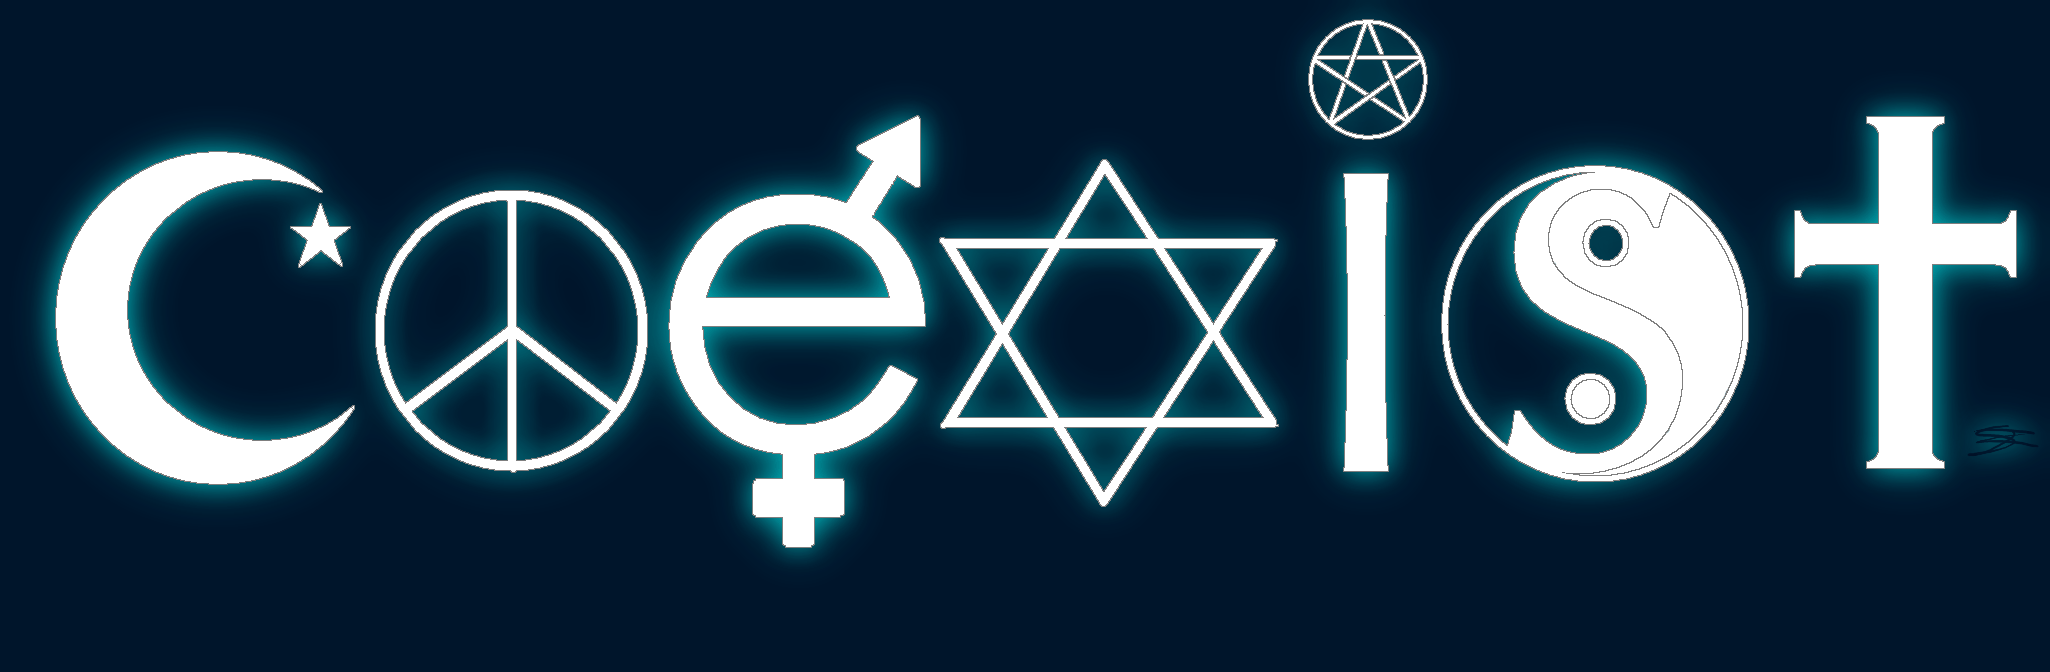 https://i0.wp.com/chirho.jasonkpowers.com/images/coexist_by_chima.png